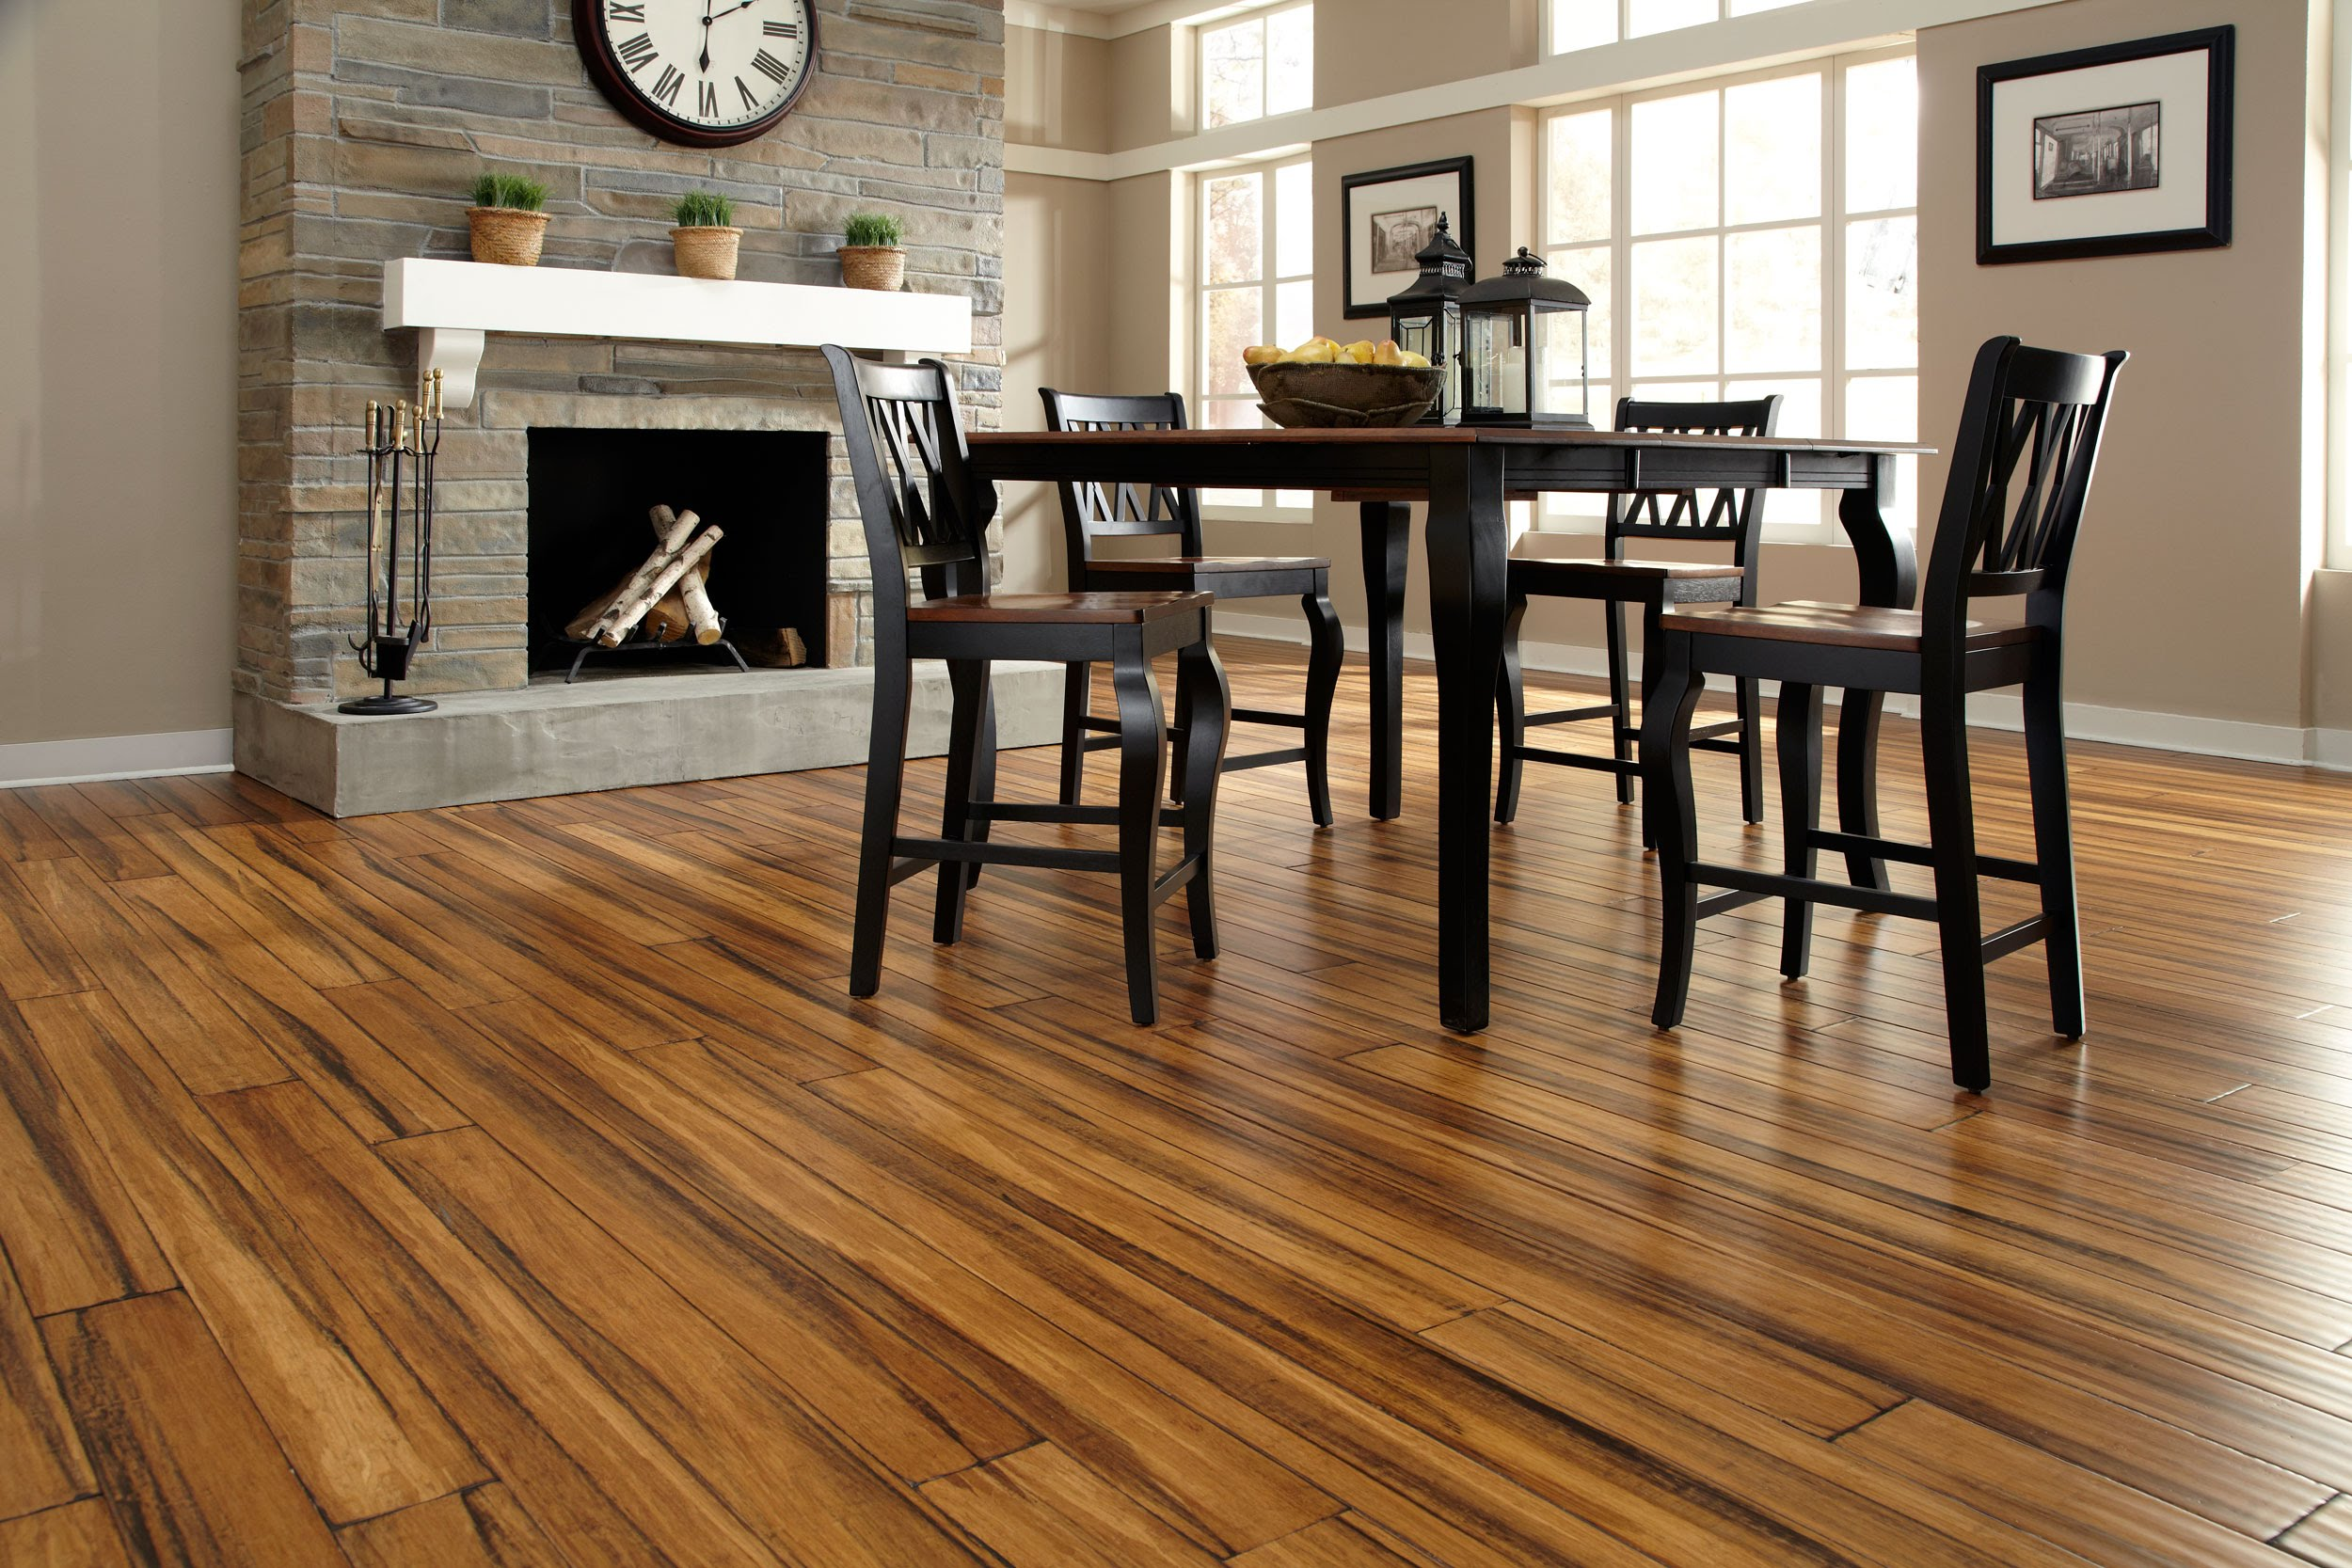 Home Flooring Ideas: 5 Tips & Tricks for Installing Bamboo Flooring